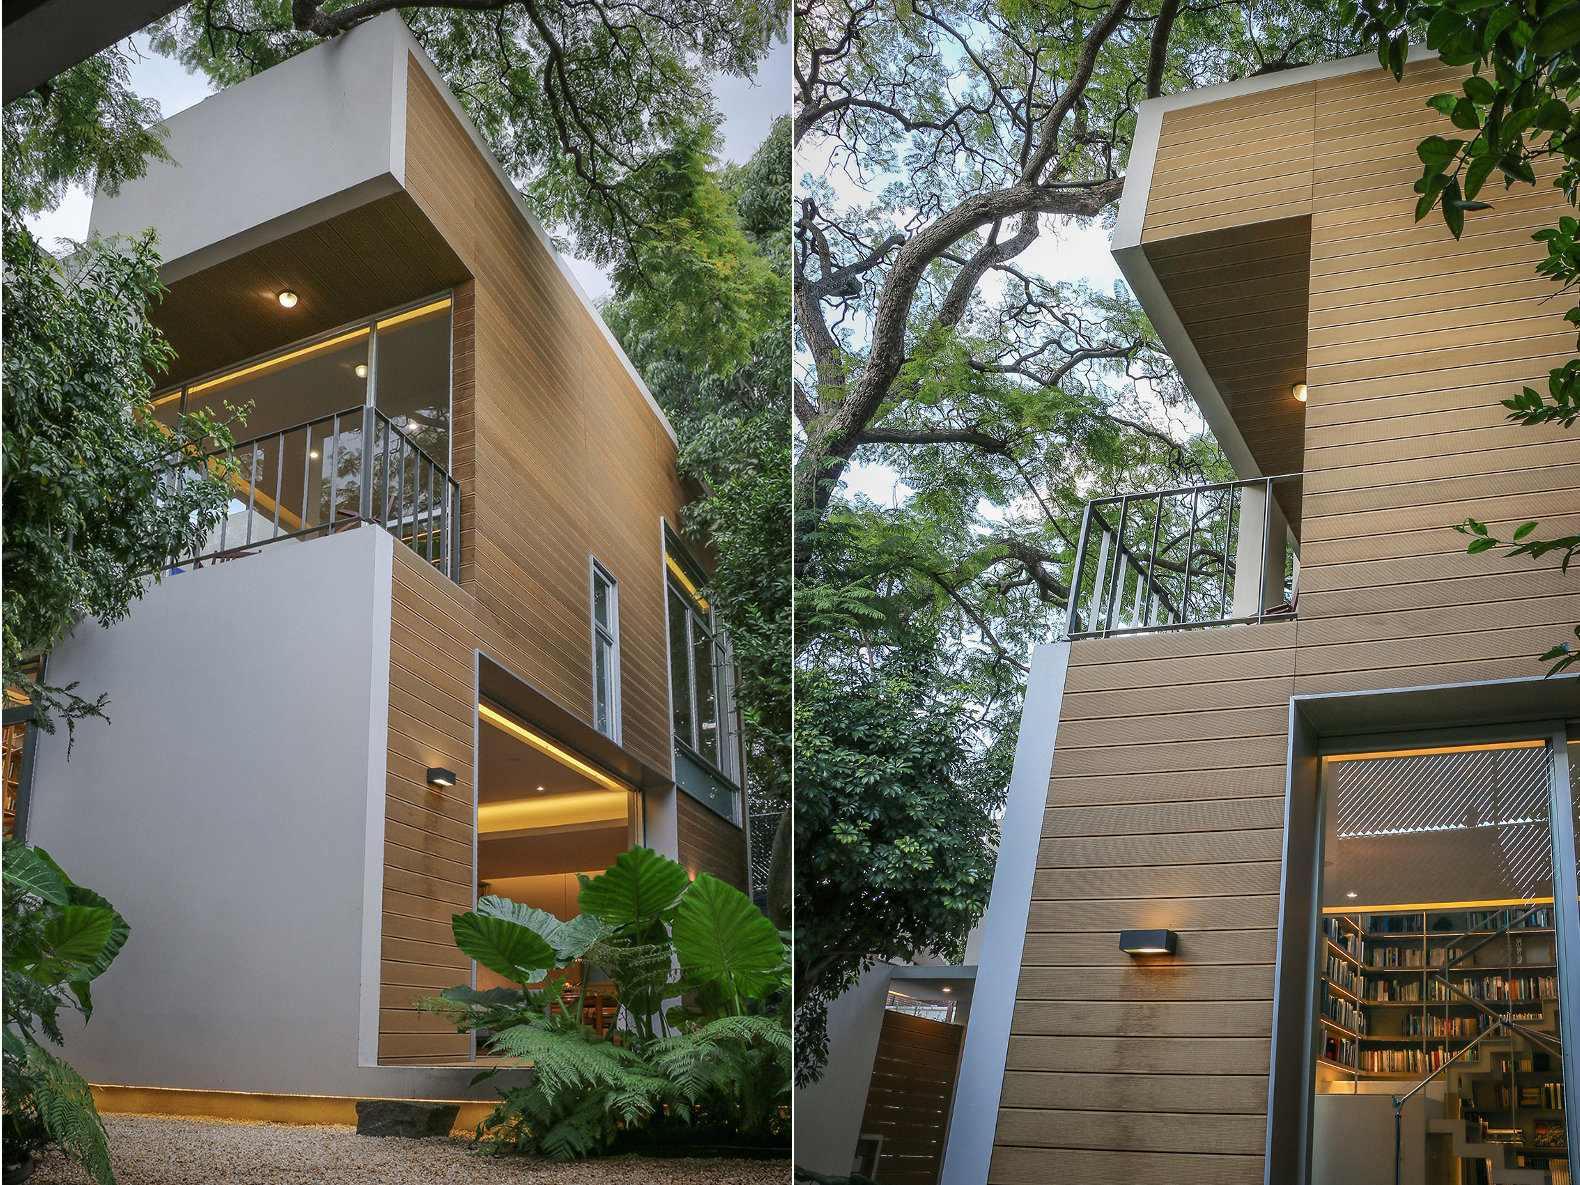 Affordable Housing Made Of Recycled Materials Inhabitat Green